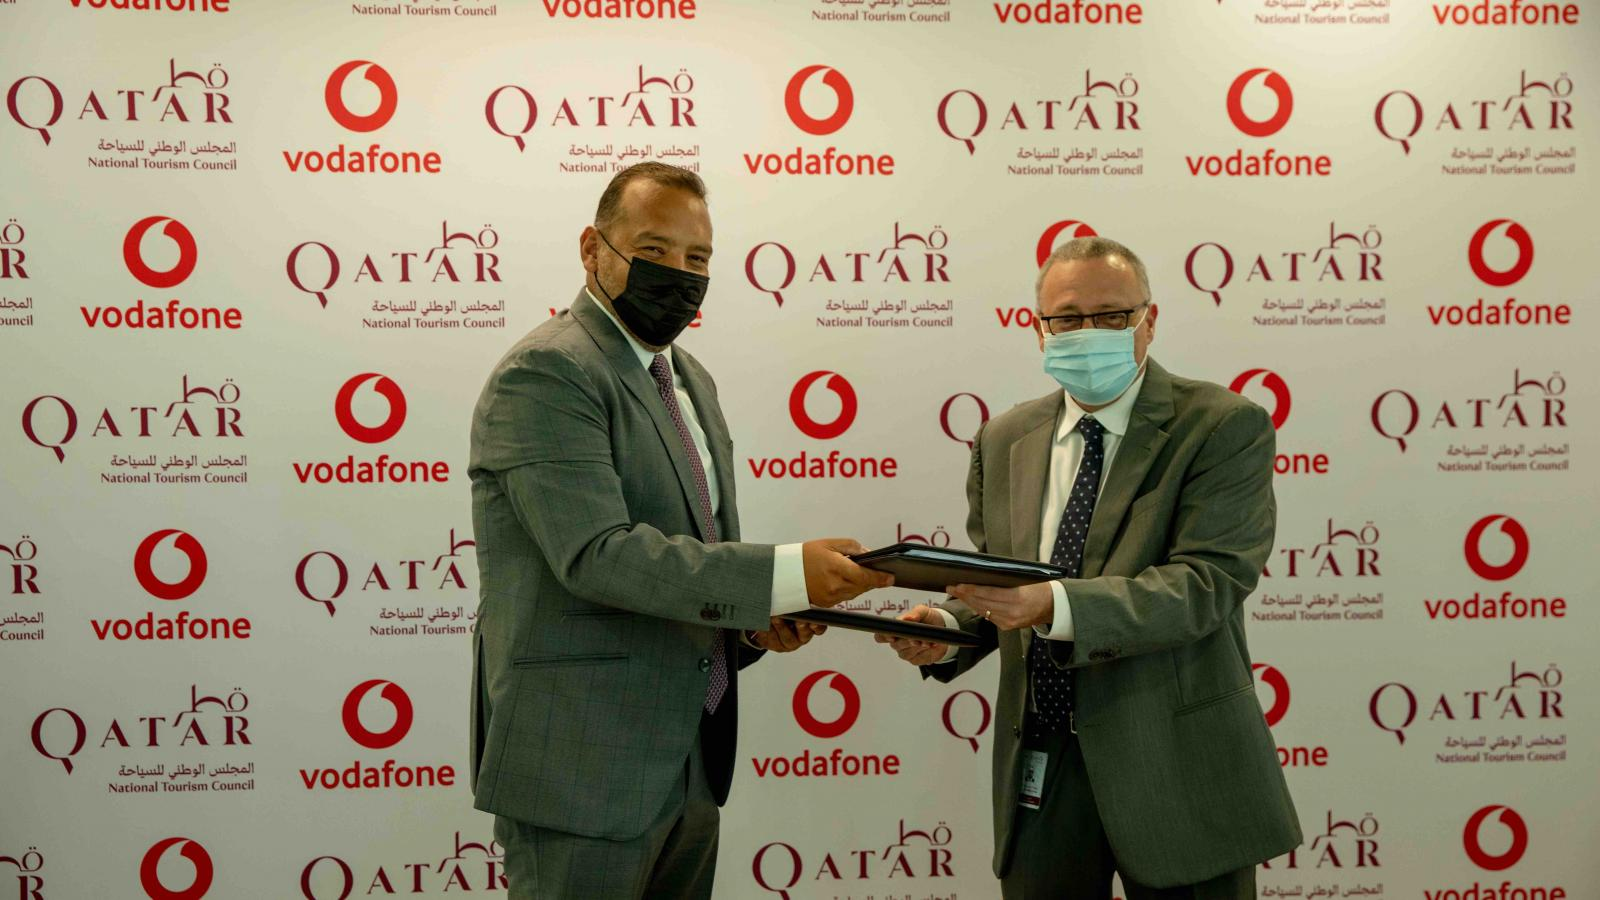 Vodafone and Qatar National Tourism Council sign MoU to exploit big data analytics